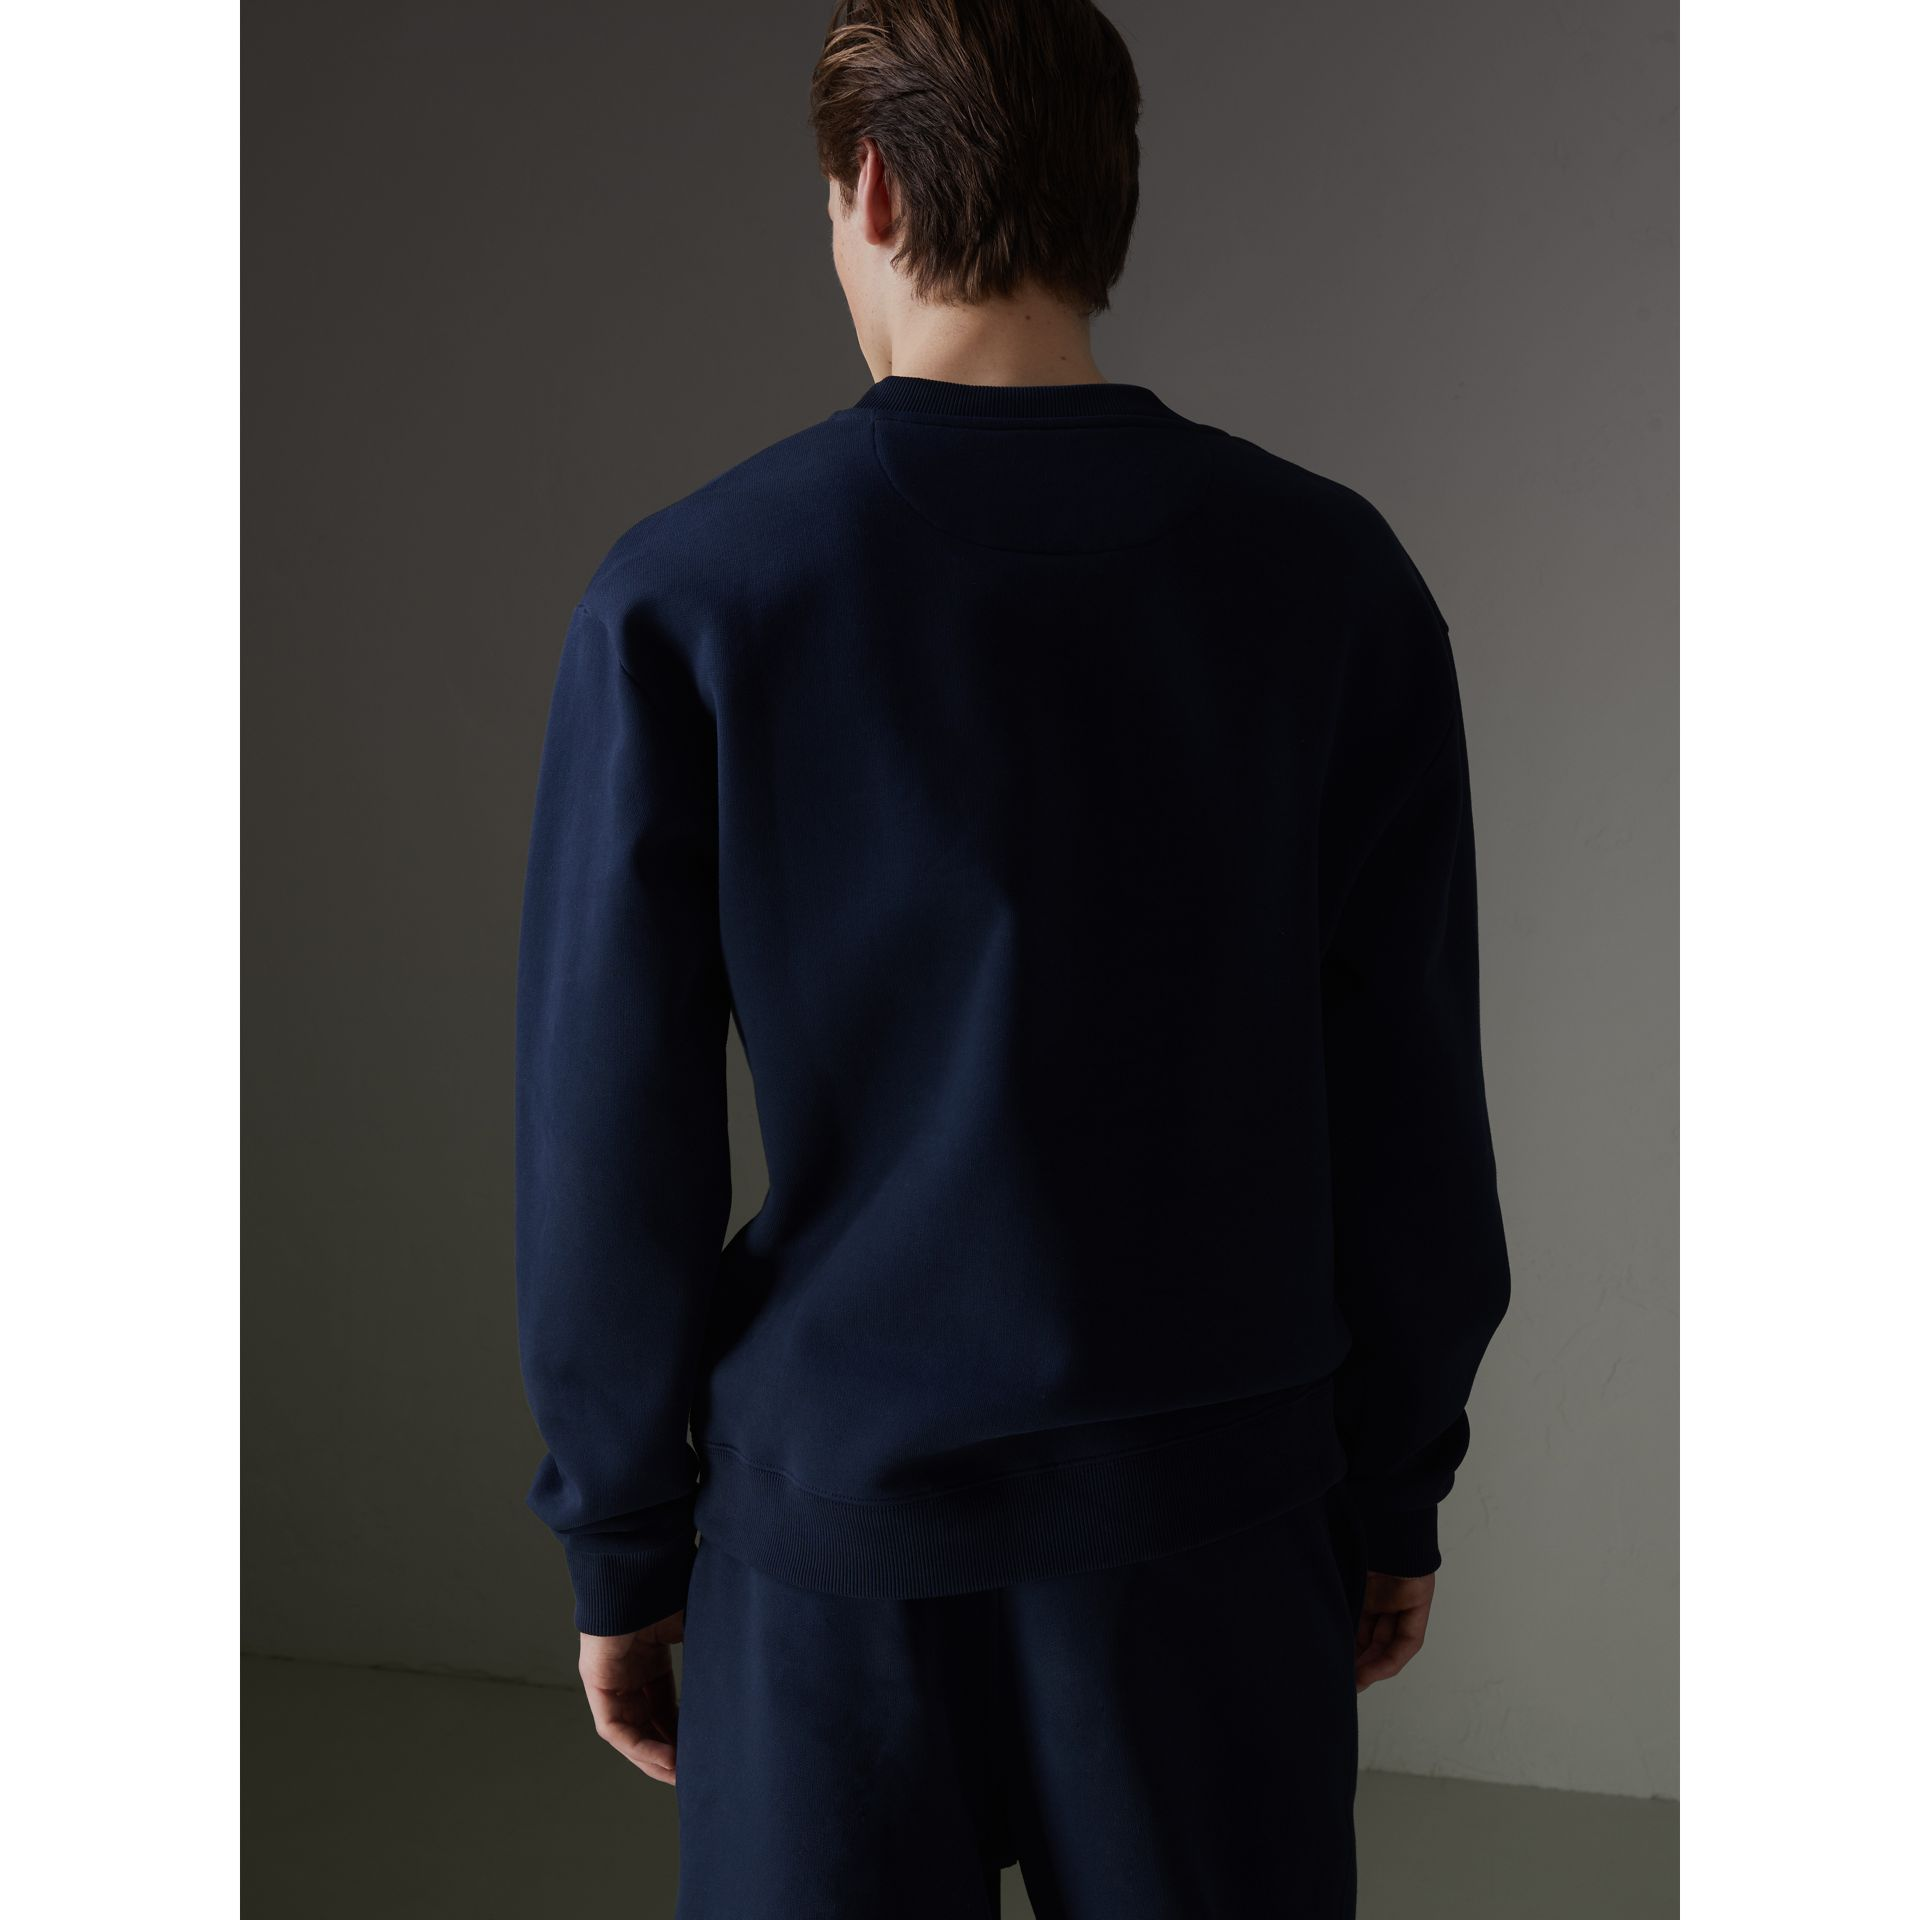 Sweat-shirt en jersey revisité (Bleu Foncé) - Homme | Burberry - photo de la galerie 2